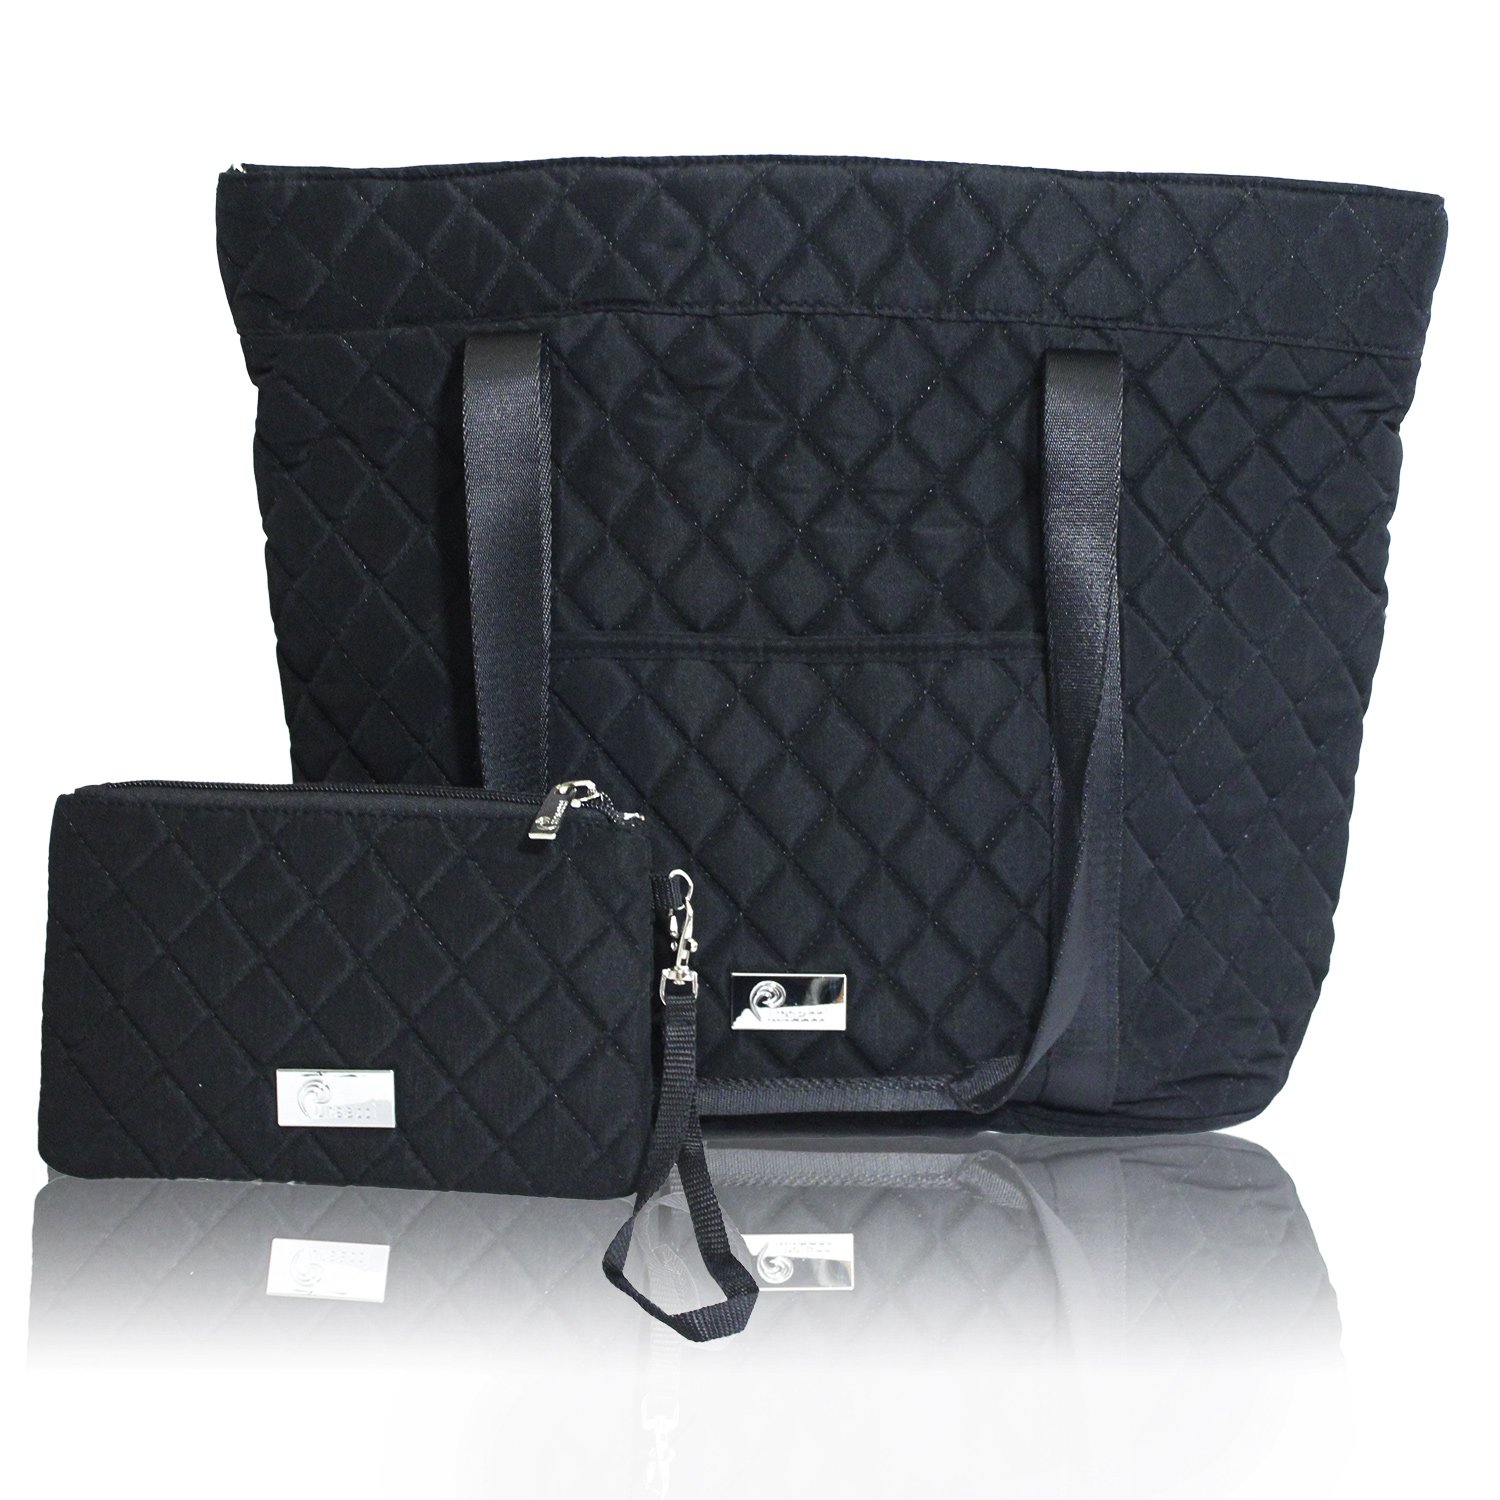 Amazon.com: Pursetti Black Quilted Tote Bag for Women w/ Bonus ... : quilted tote bag - Adamdwight.com